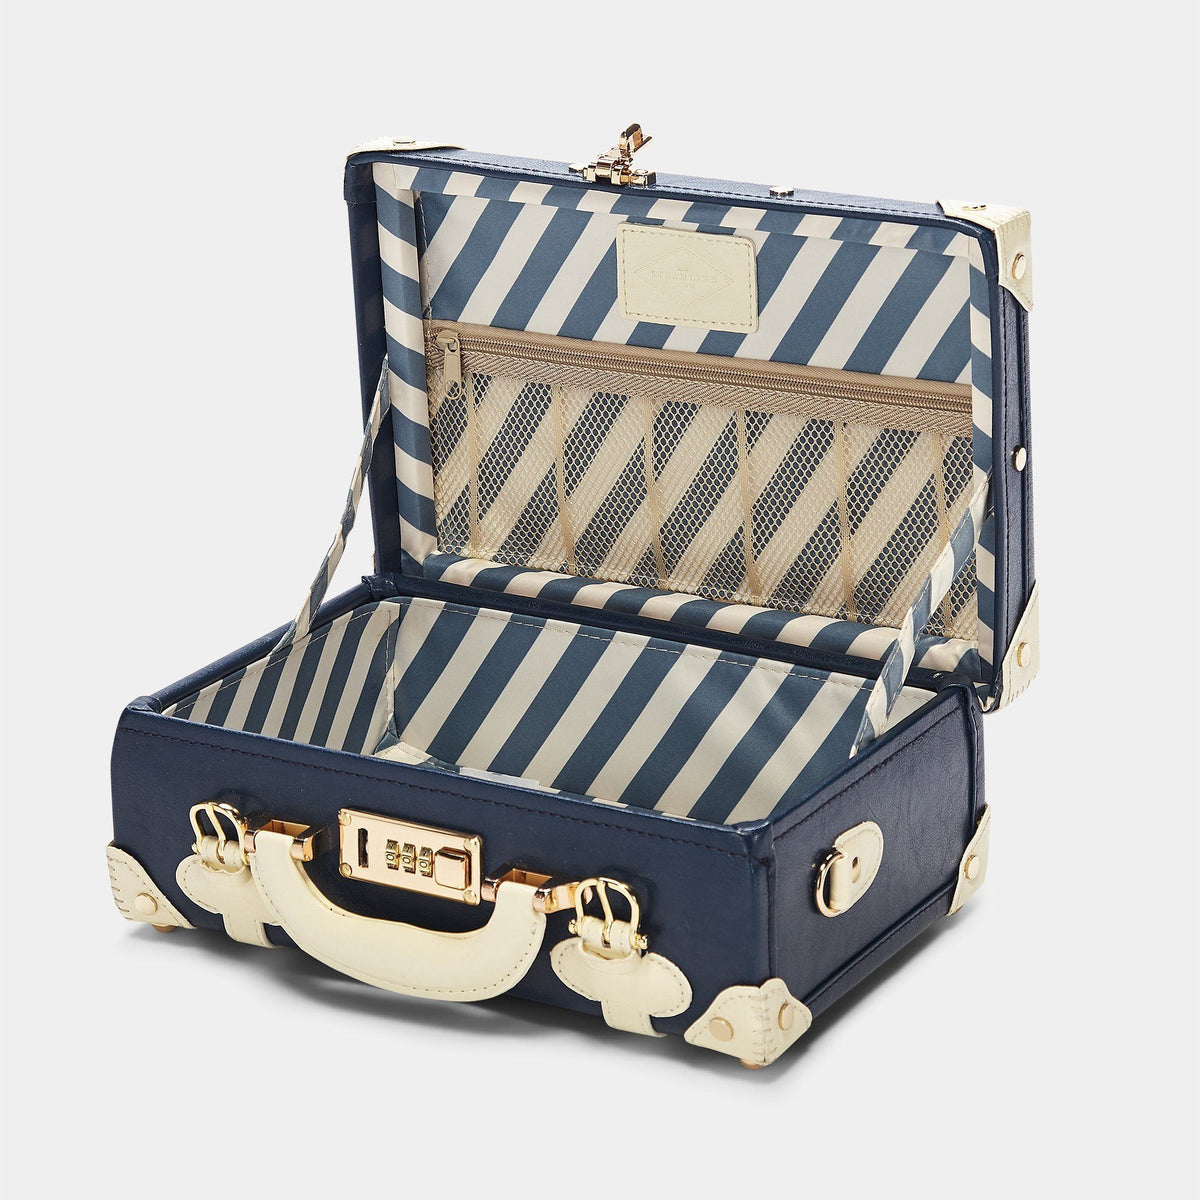 The Entrepreneur Vanity in Navy - Vintage-Inspired Luggage - Interior Front